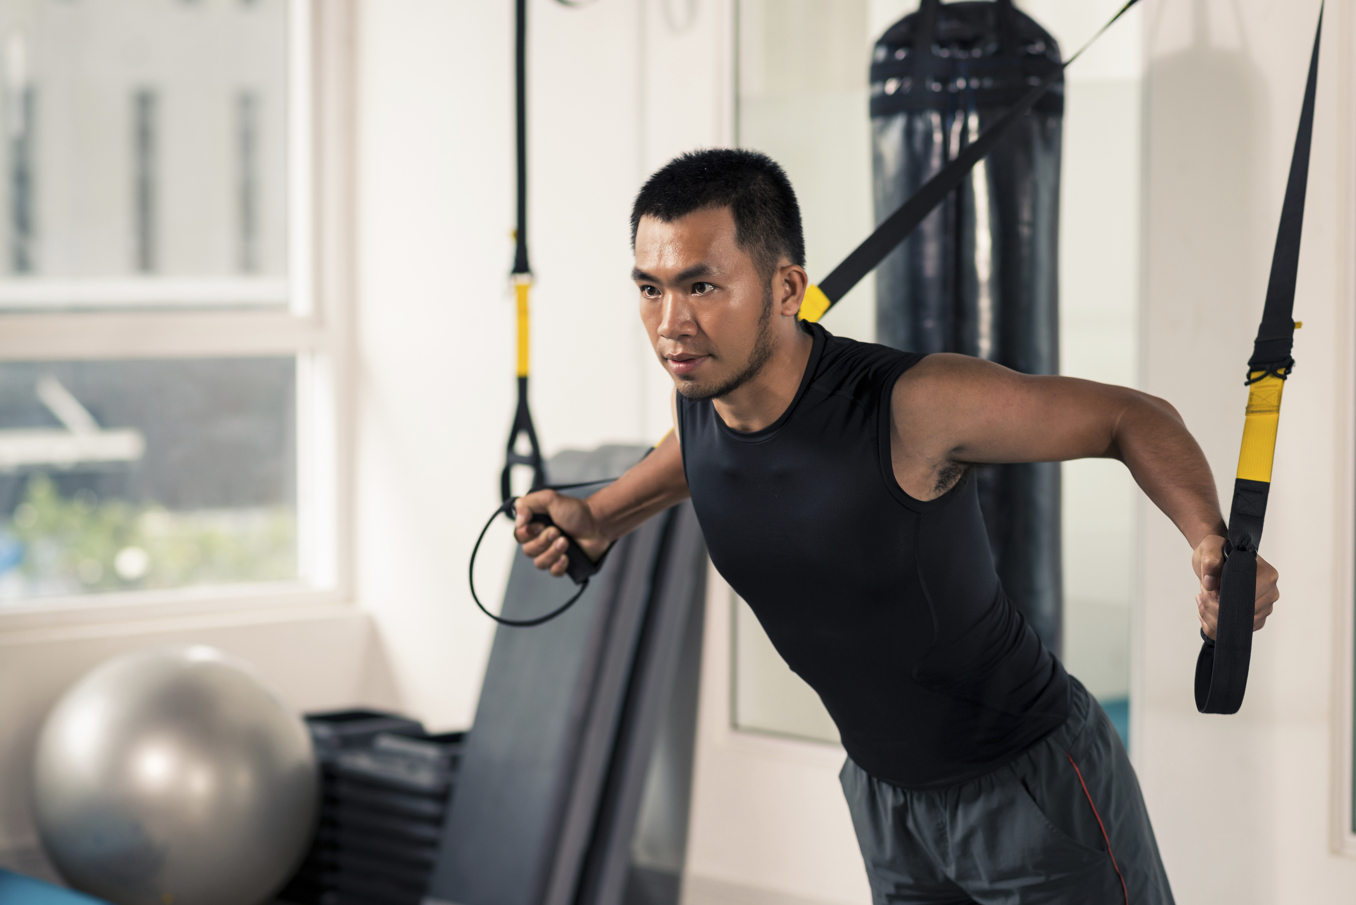 Asian man having fitness TRX training at gym